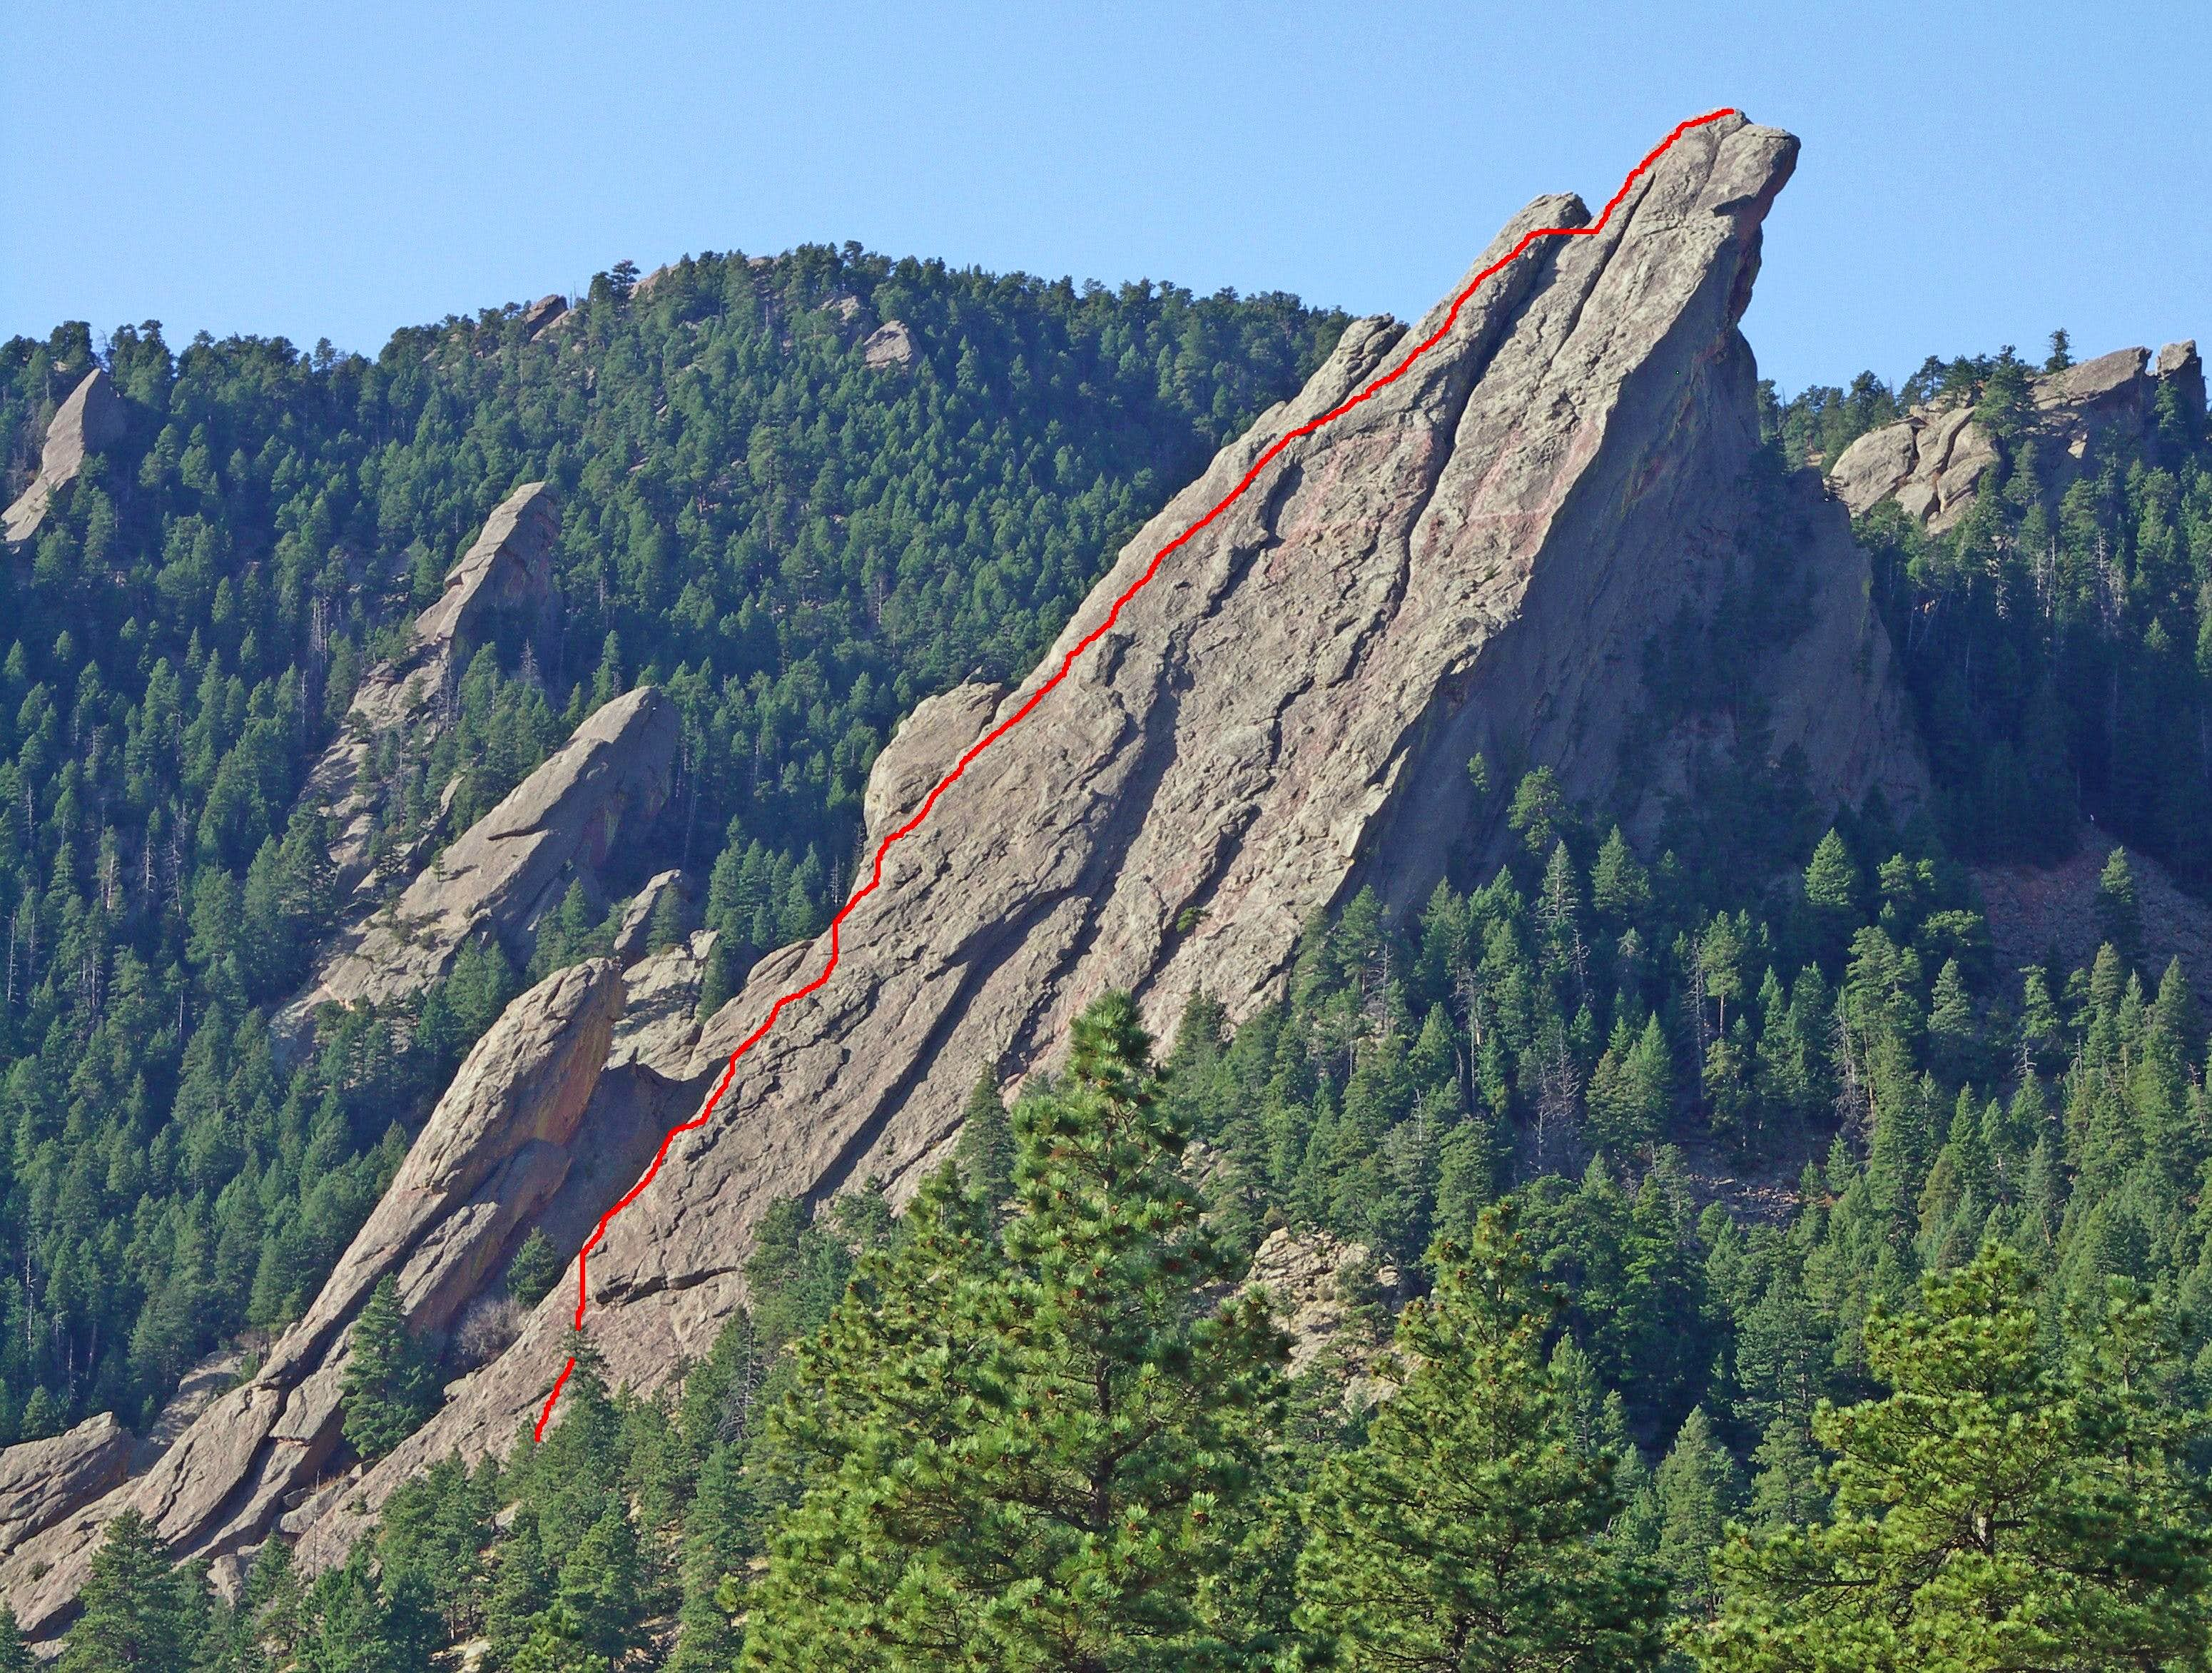 Third Flatiron - East Face South